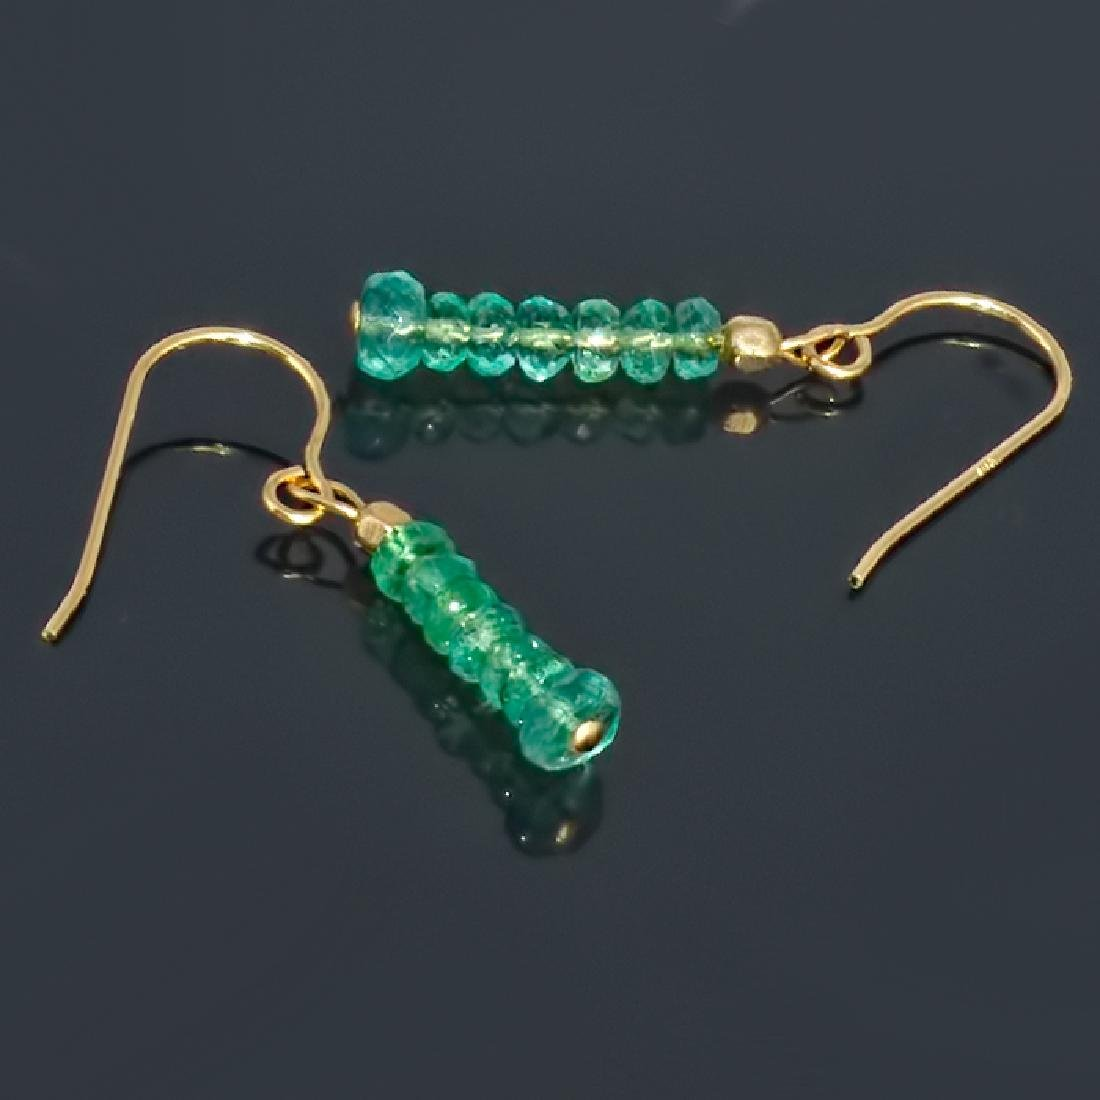 14K Earrings with Colombian Emeralds - 2